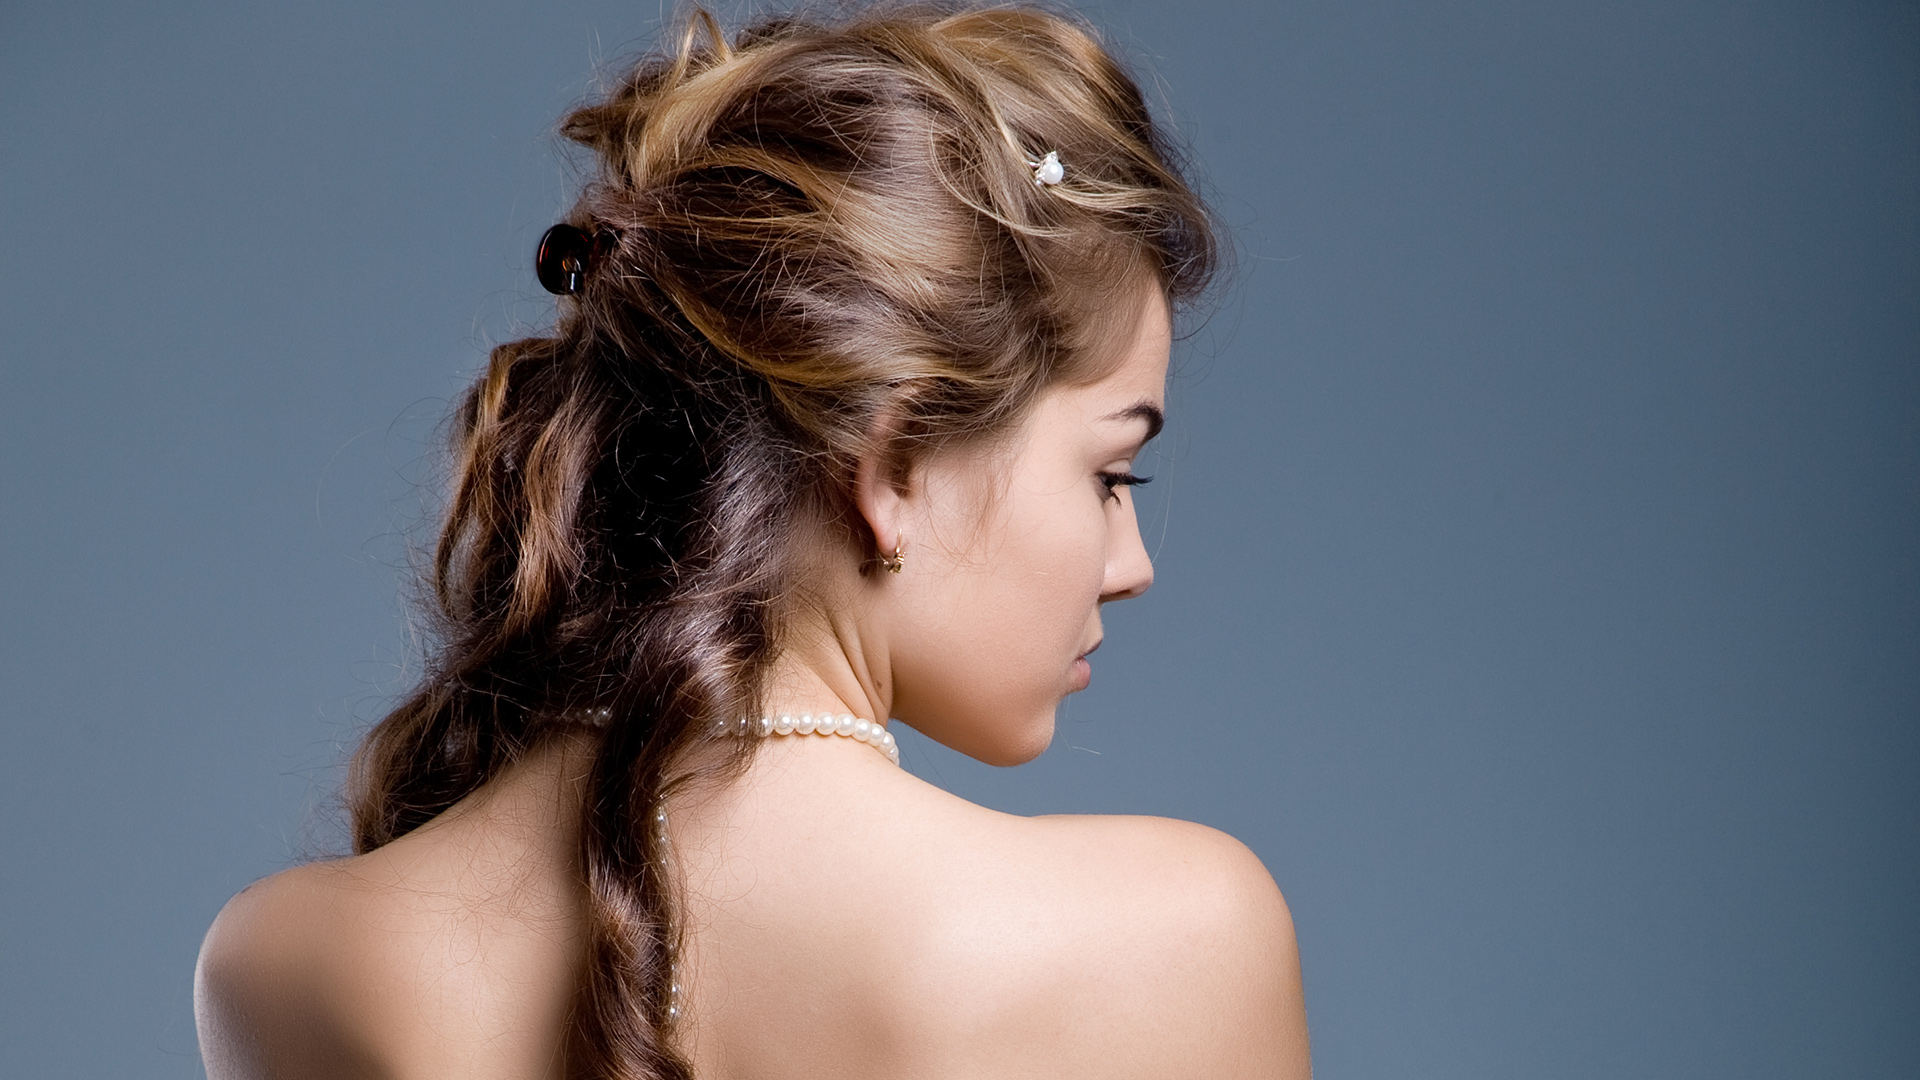 Stylish long prom hairstyles